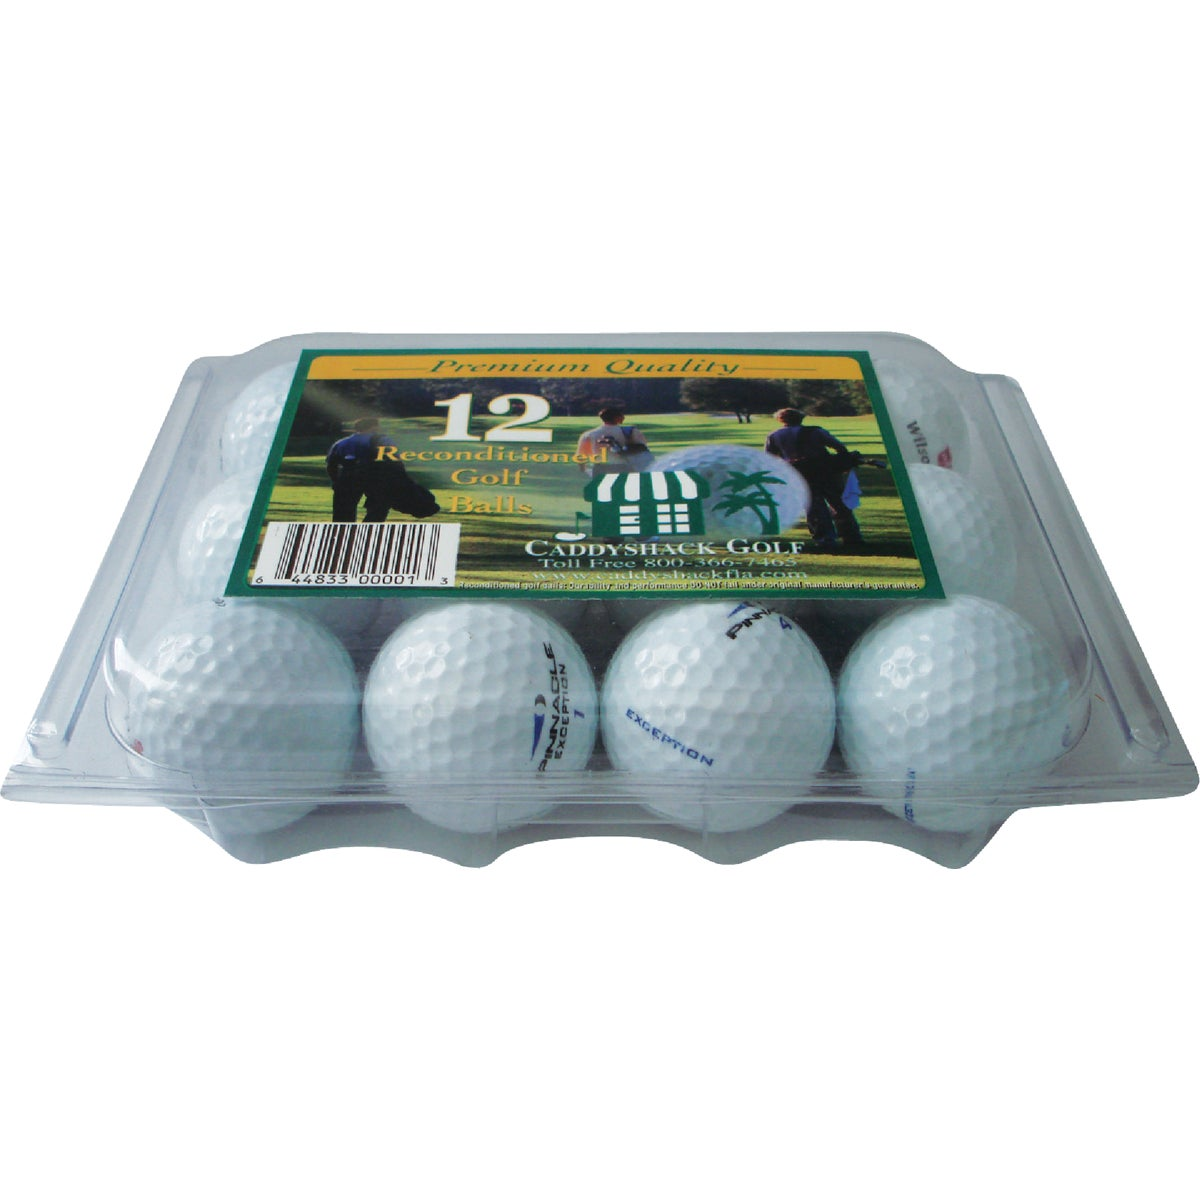 12PK RECOND GOLF BALLS - CAD12P by Caddyshack Golf